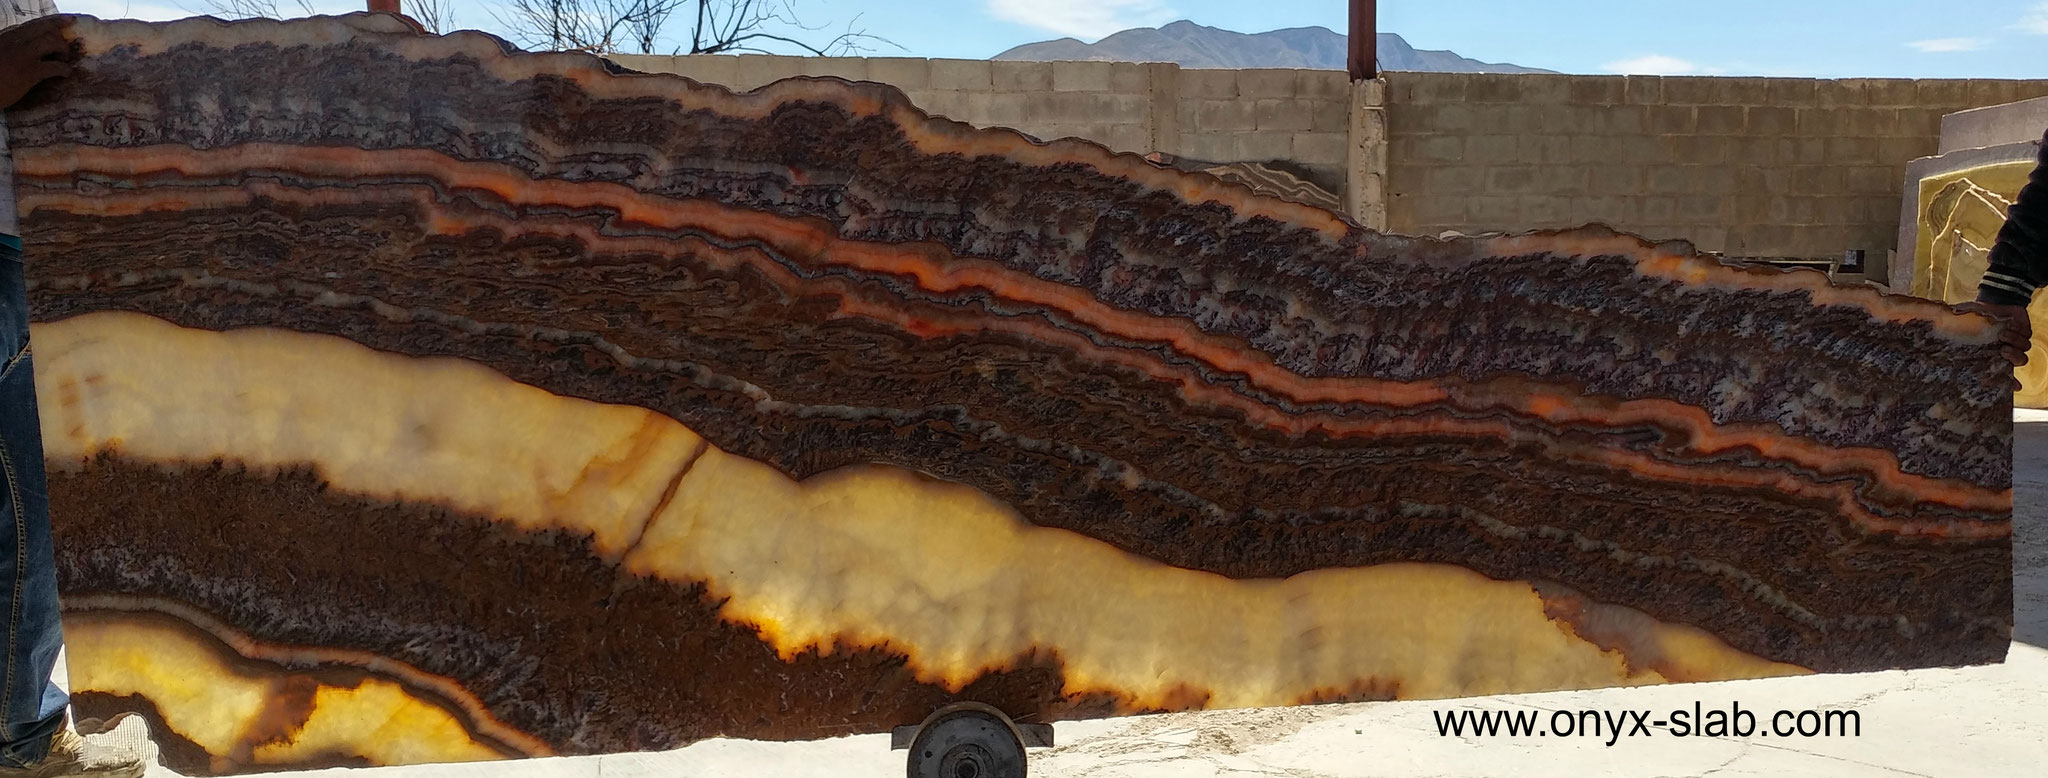 onyx slab, onyx slabs, onyx slabs price, onyx slabs for sale, onyx slabs countertops, red onyx slabs, onyx slab wall, onyx slabs dining table